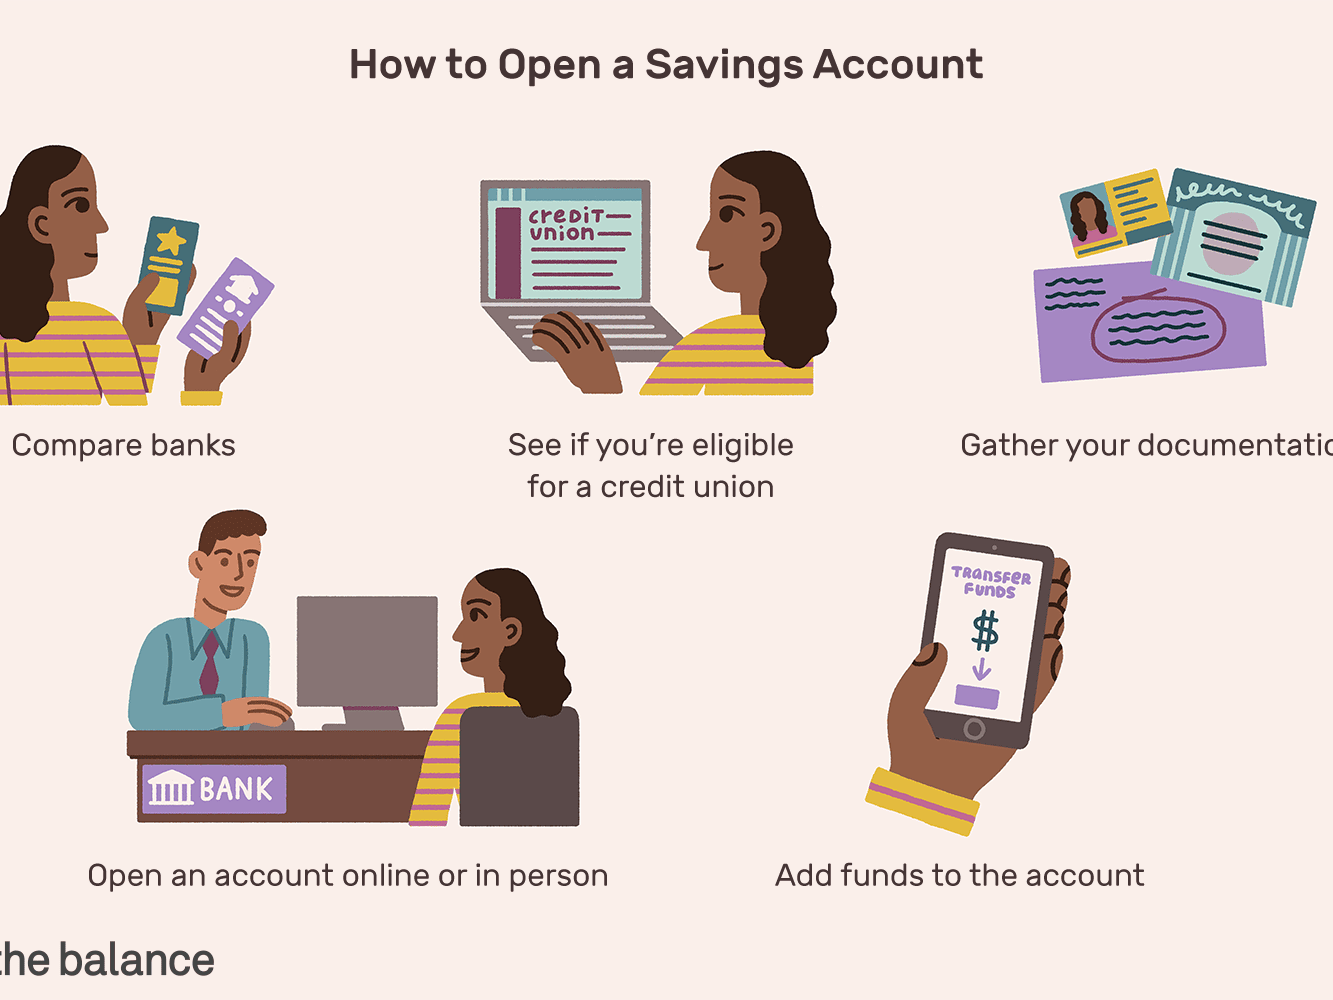 where can i open a free checking account online